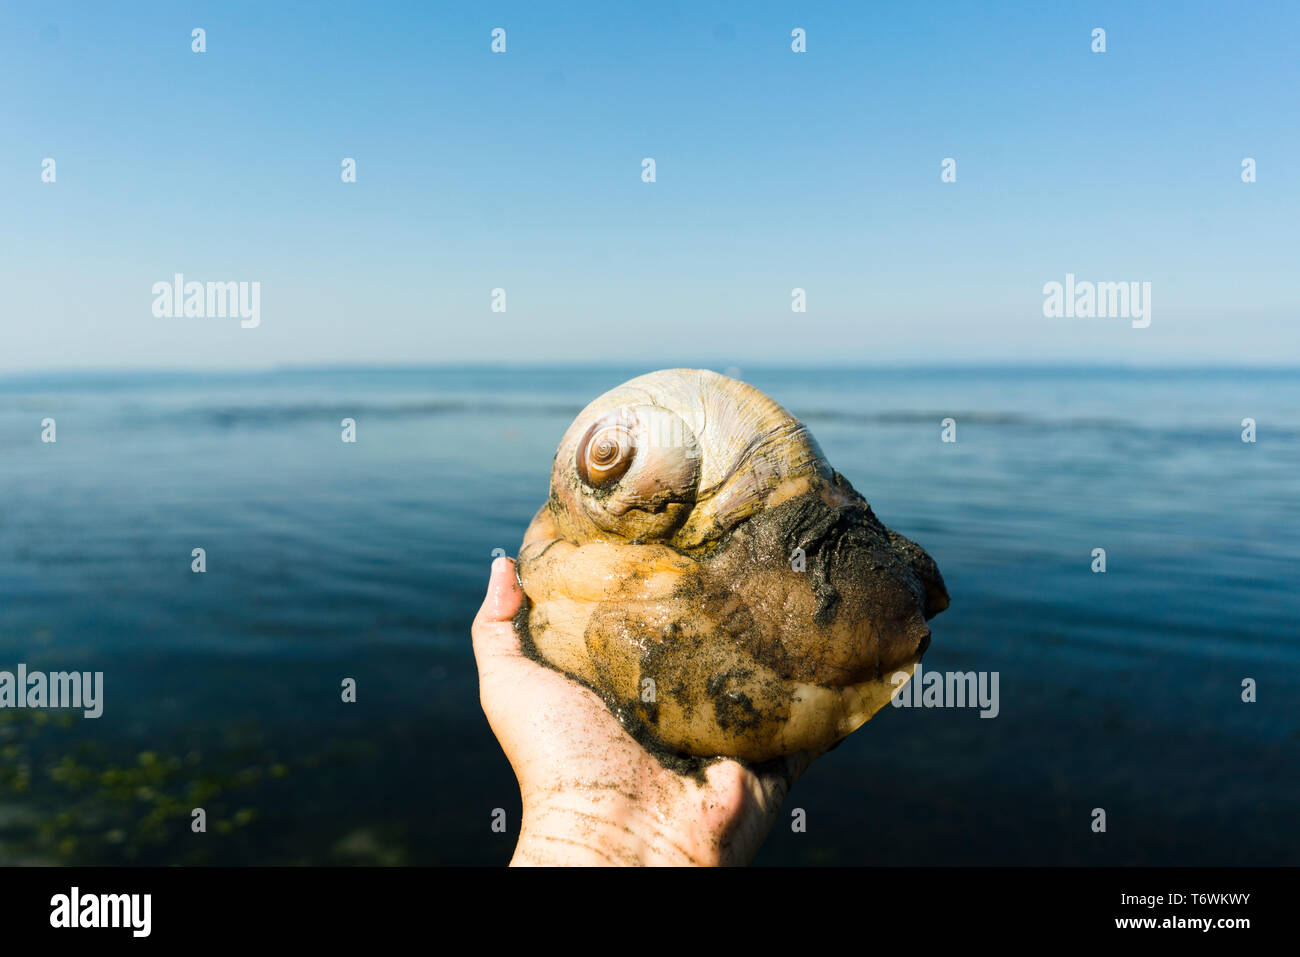 Cropped image of a person holding a moon snail against a beach horizon Stock Photo